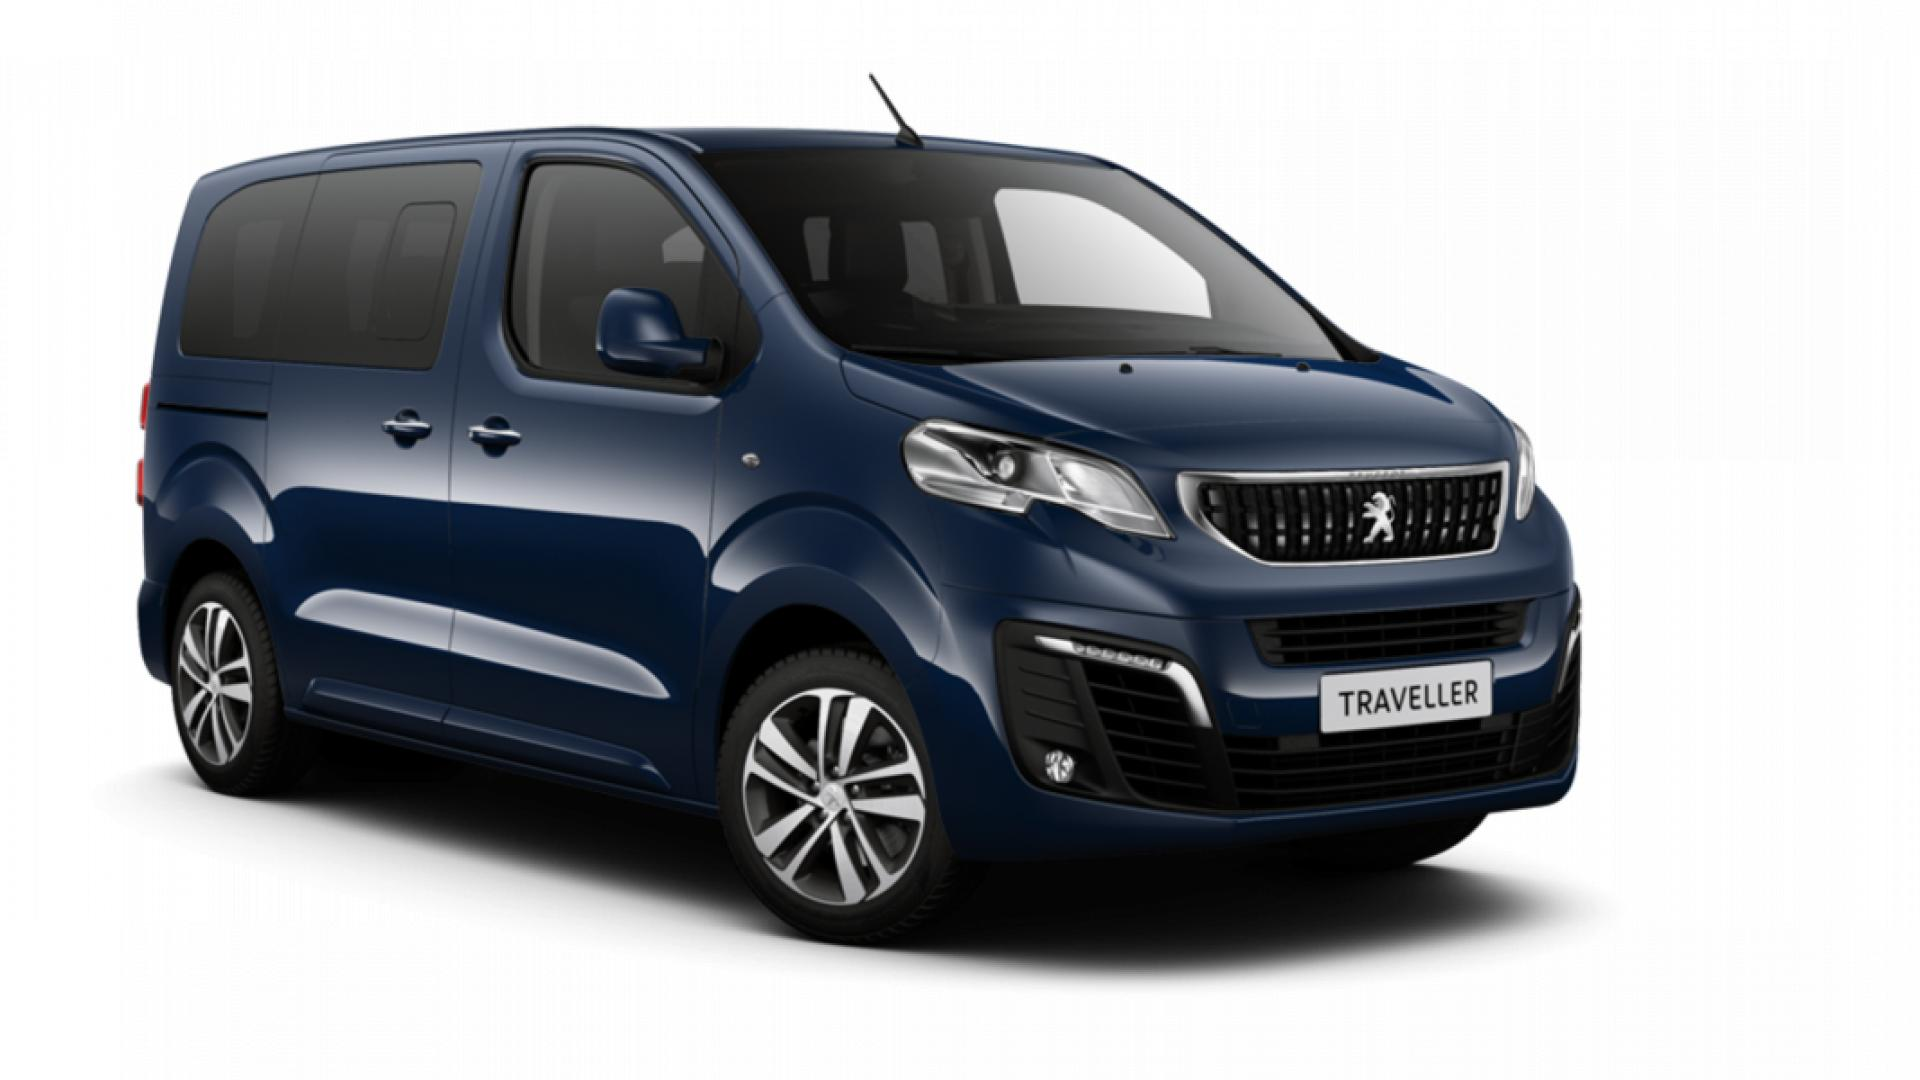 new peugeot traveller sw 2 0 bluehdi 180 allure compact 8 seat 5dr eat6 robins and day. Black Bedroom Furniture Sets. Home Design Ideas